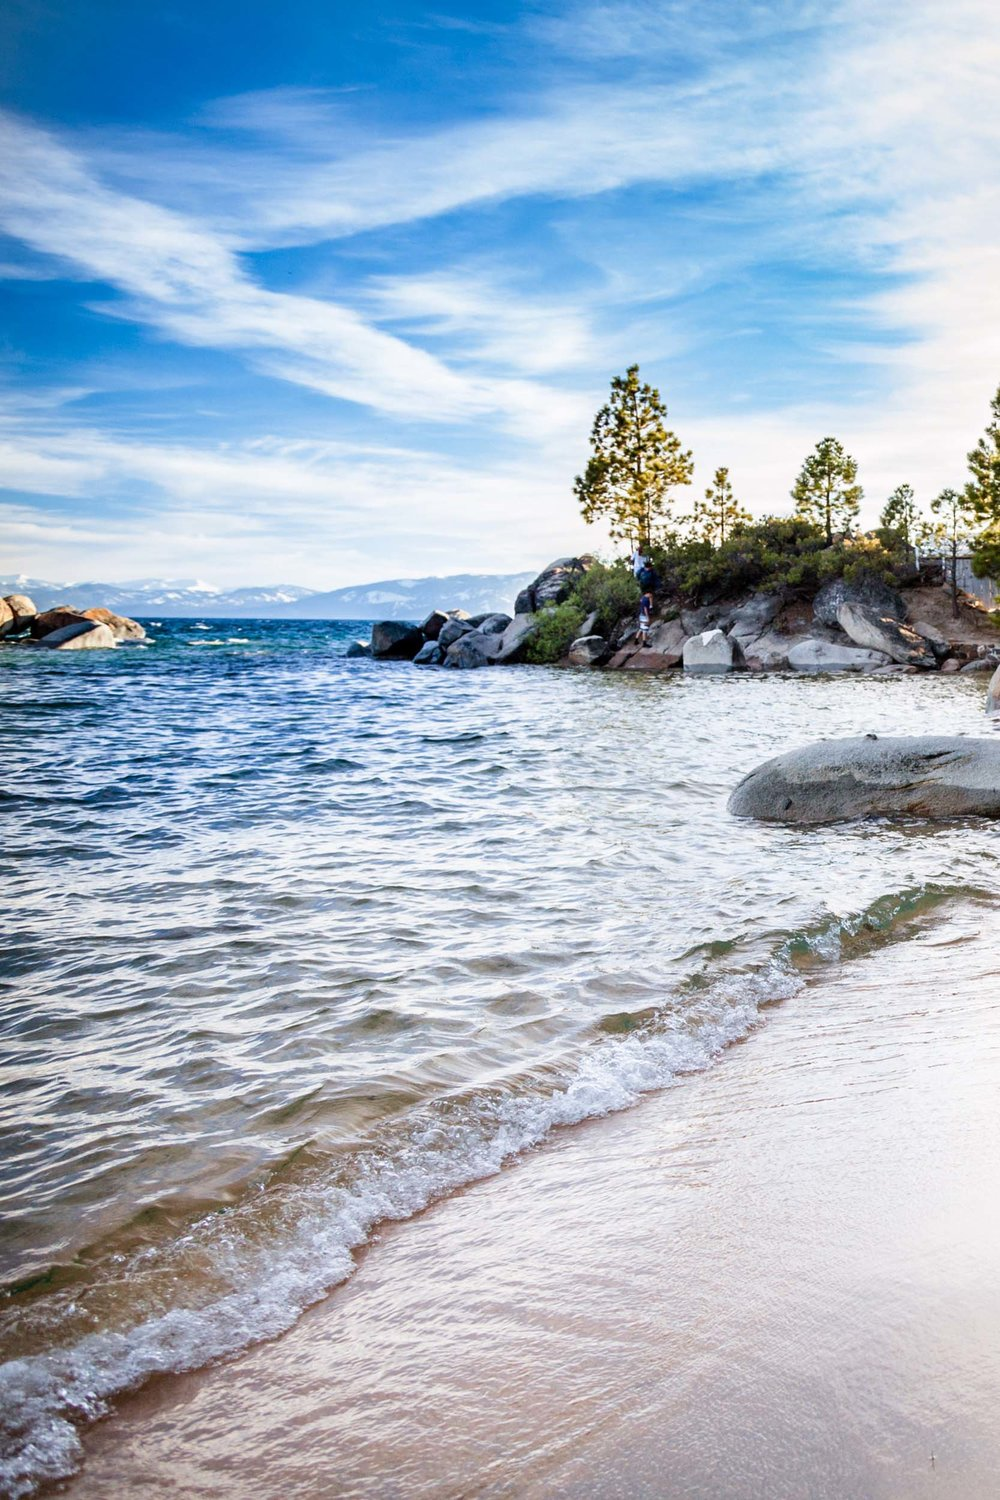 Check out these gorgeous photos of Lake Tahoe and learn more about what inspires local Flytographer Carly on the Flytographer blog! | Travel + Vacation Photographer | Family Vacations | Engagement Proposals | Honeymoons | Anniversary Gifts | Bachelorette Ideas | Solo Traveller Tips |  Flytographer captures your travel memories - everything from surprise proposals, honeymoons, family vacations, and more. So often you are missing out of your own photos! Flytographer solves that problem for you. Our photographers also act as informal tour guides and provide fun local tips to our customers, showing them an area of a city they may not have explored without Flytographer. Book your photographer at 1.888.211.7178 or visit our website at www.flytographer.com/book